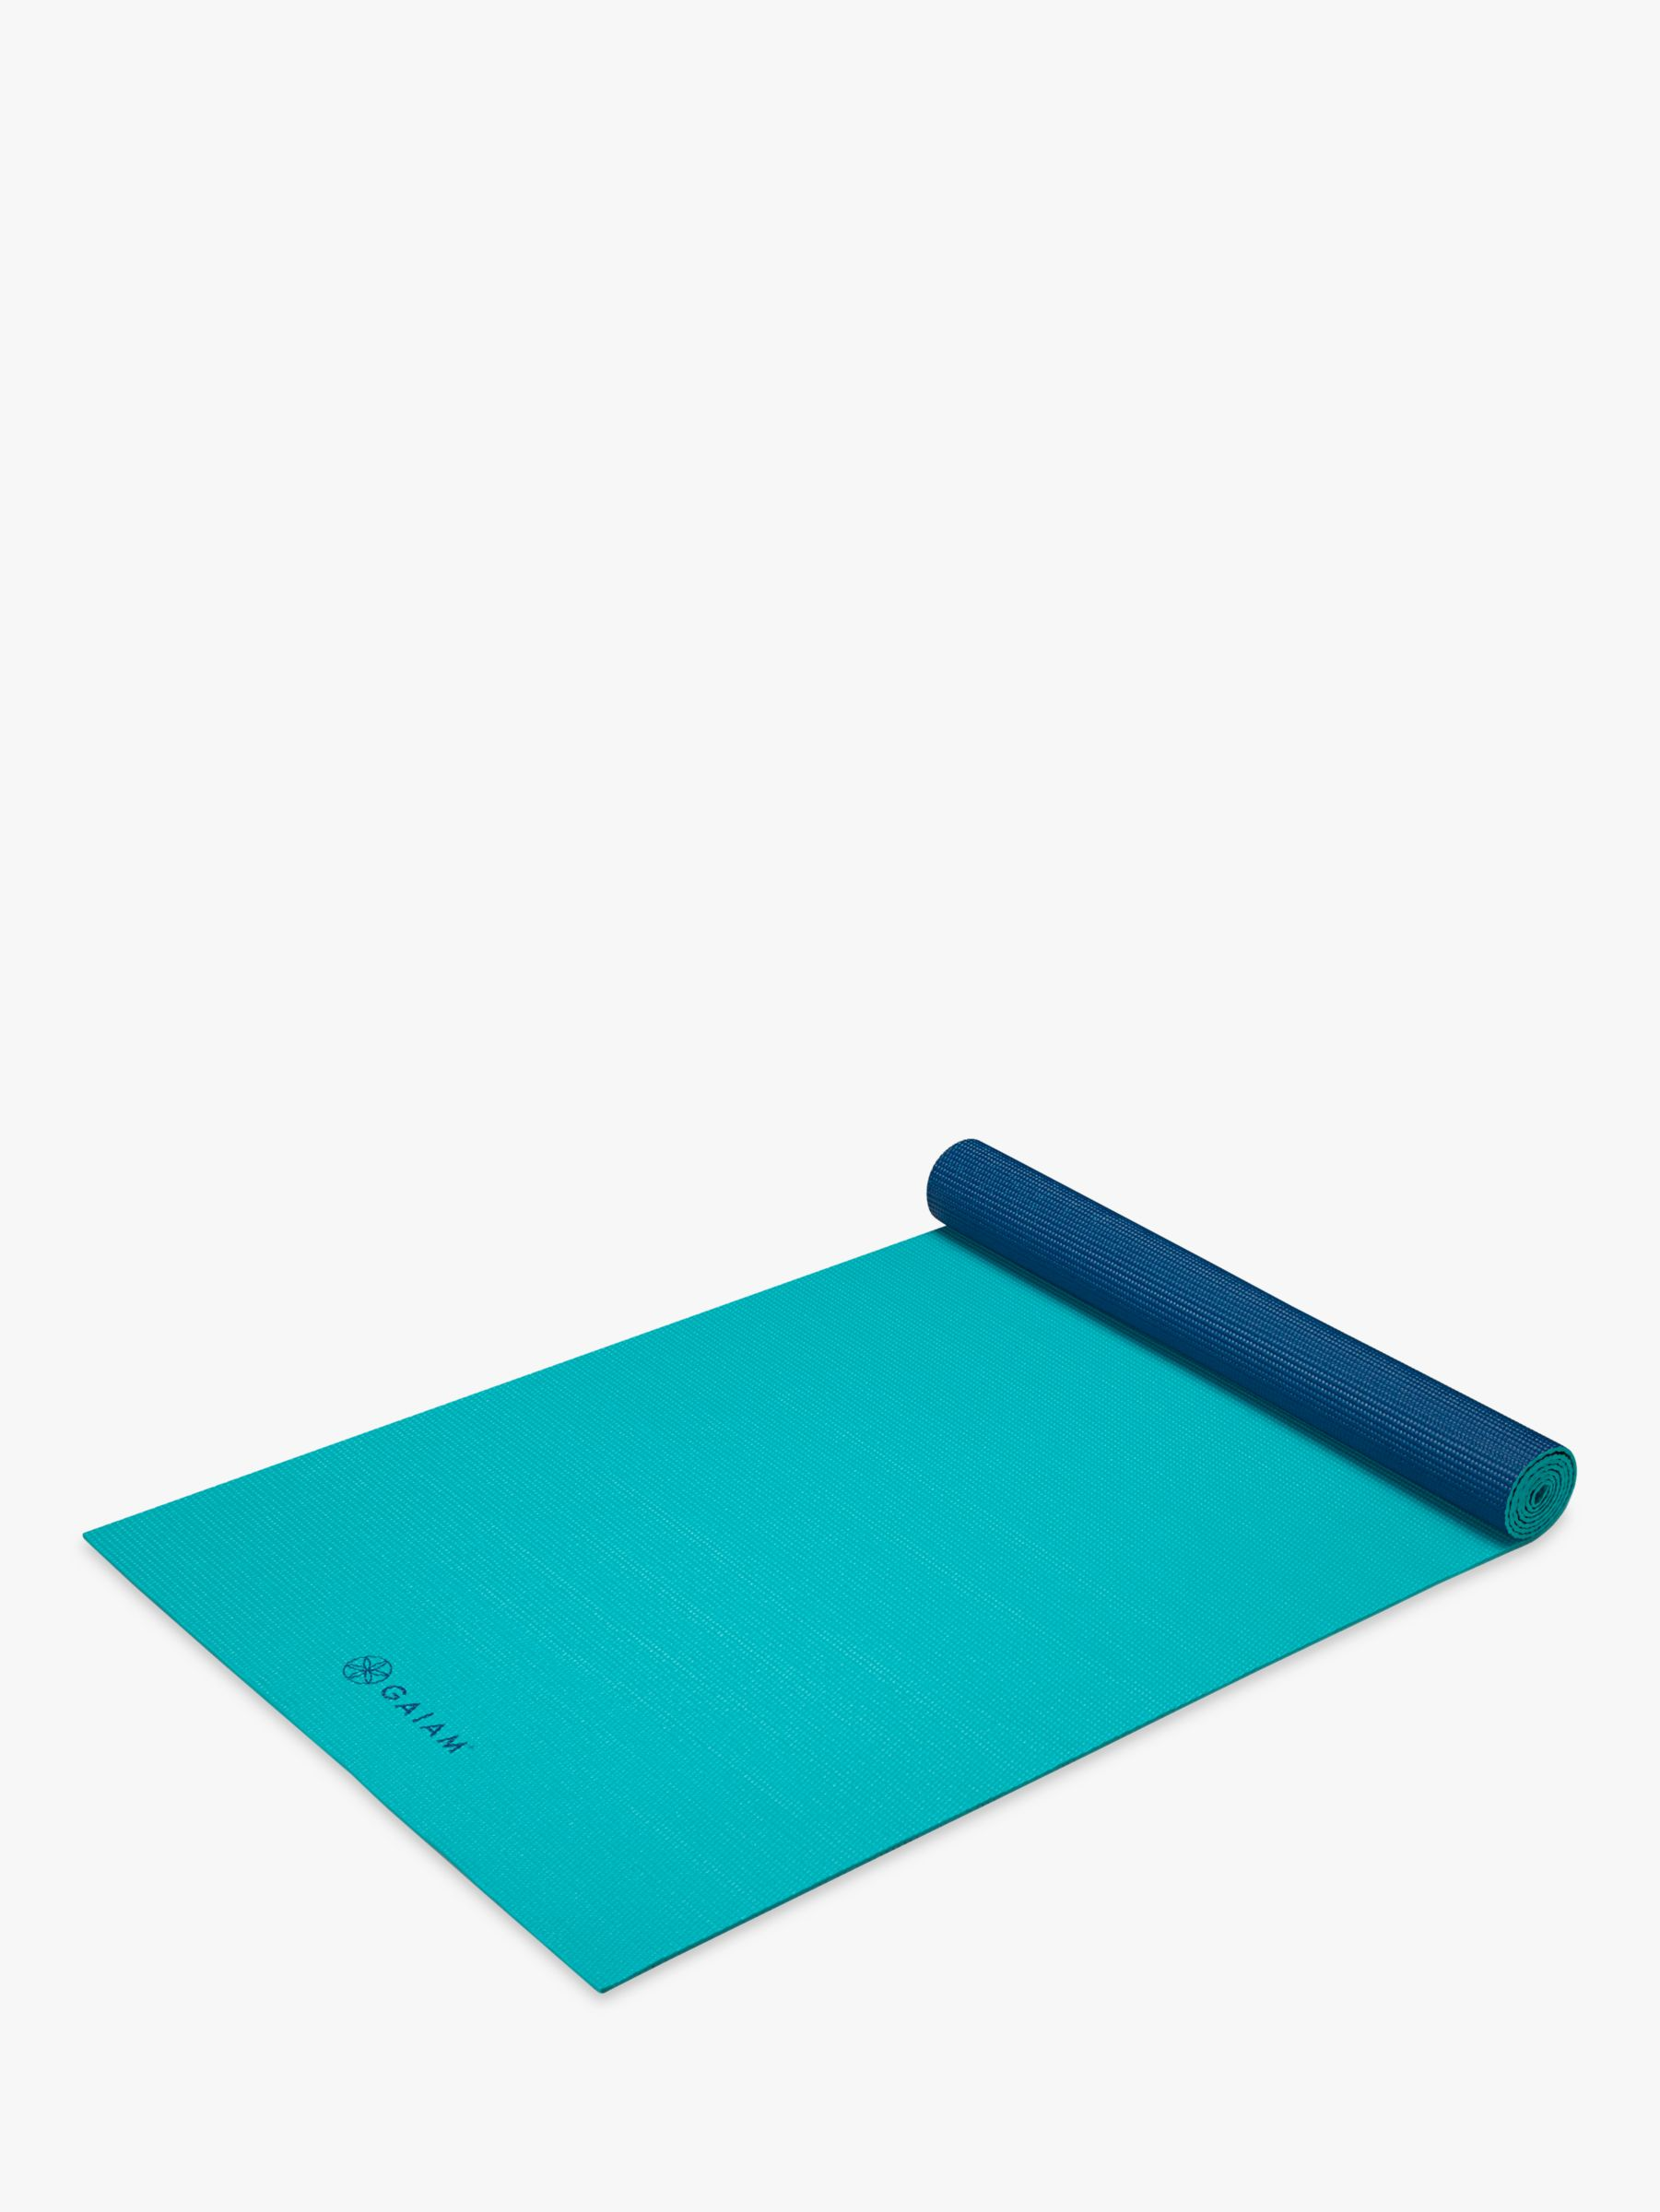 Gaiam Gaiam 4mm Yoga Mat, Open Sea